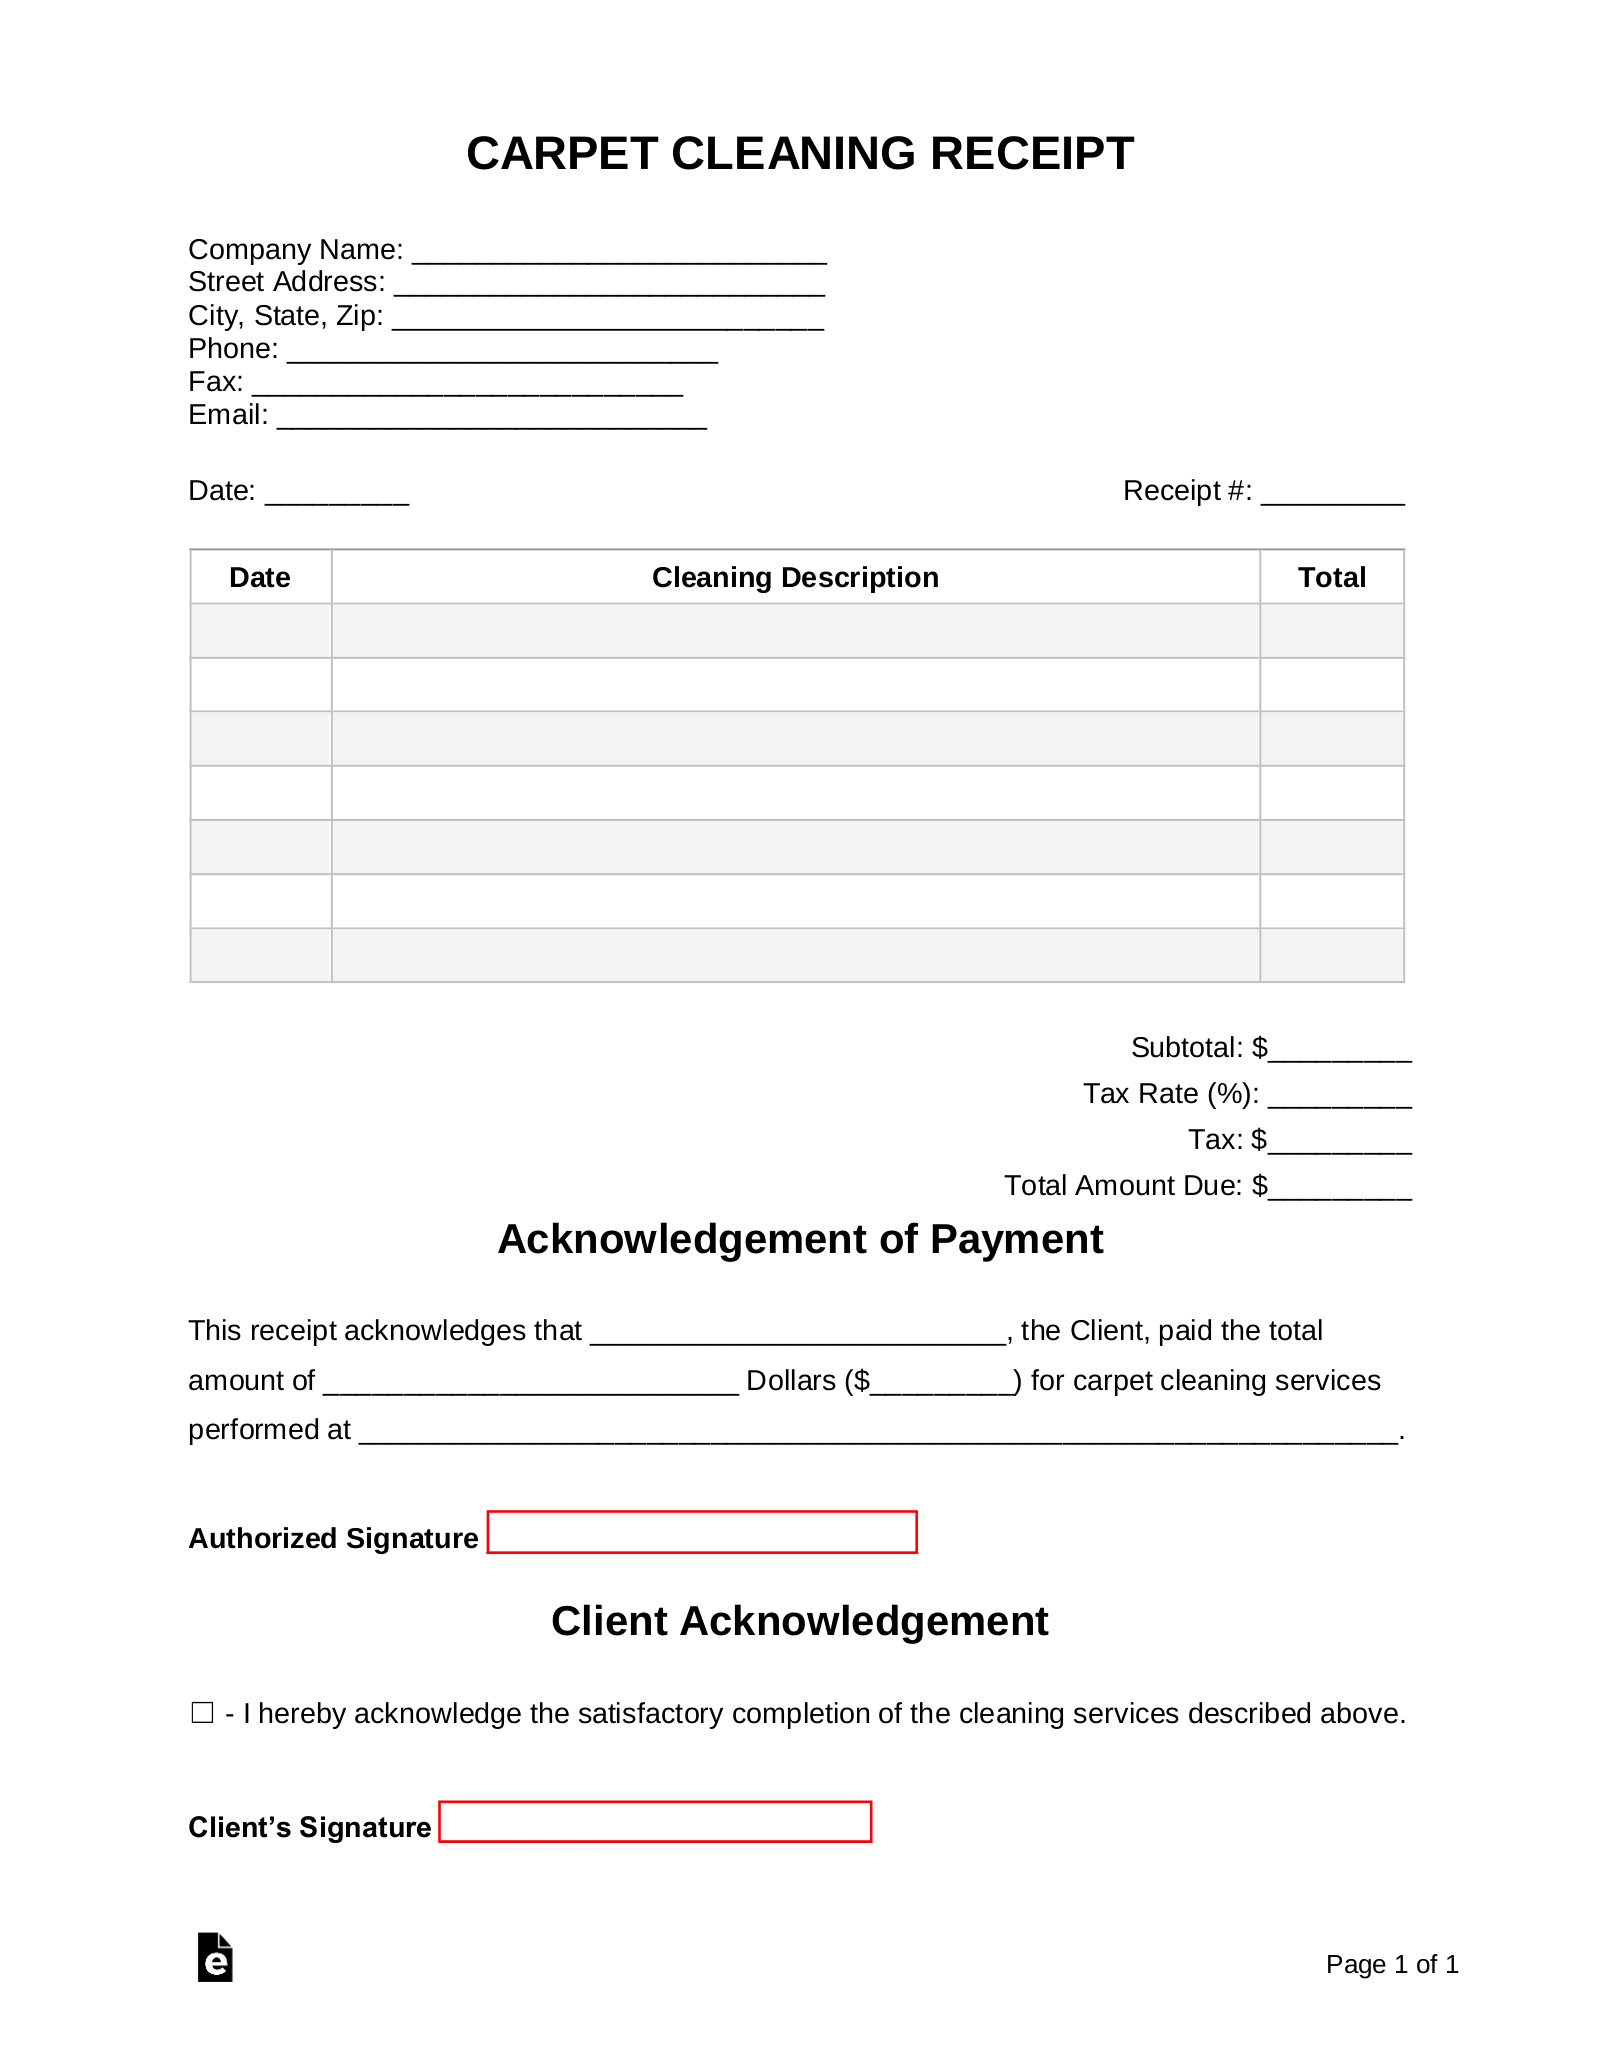 Free Carpet Cleaning Receipt Template Pdf Word Eforms